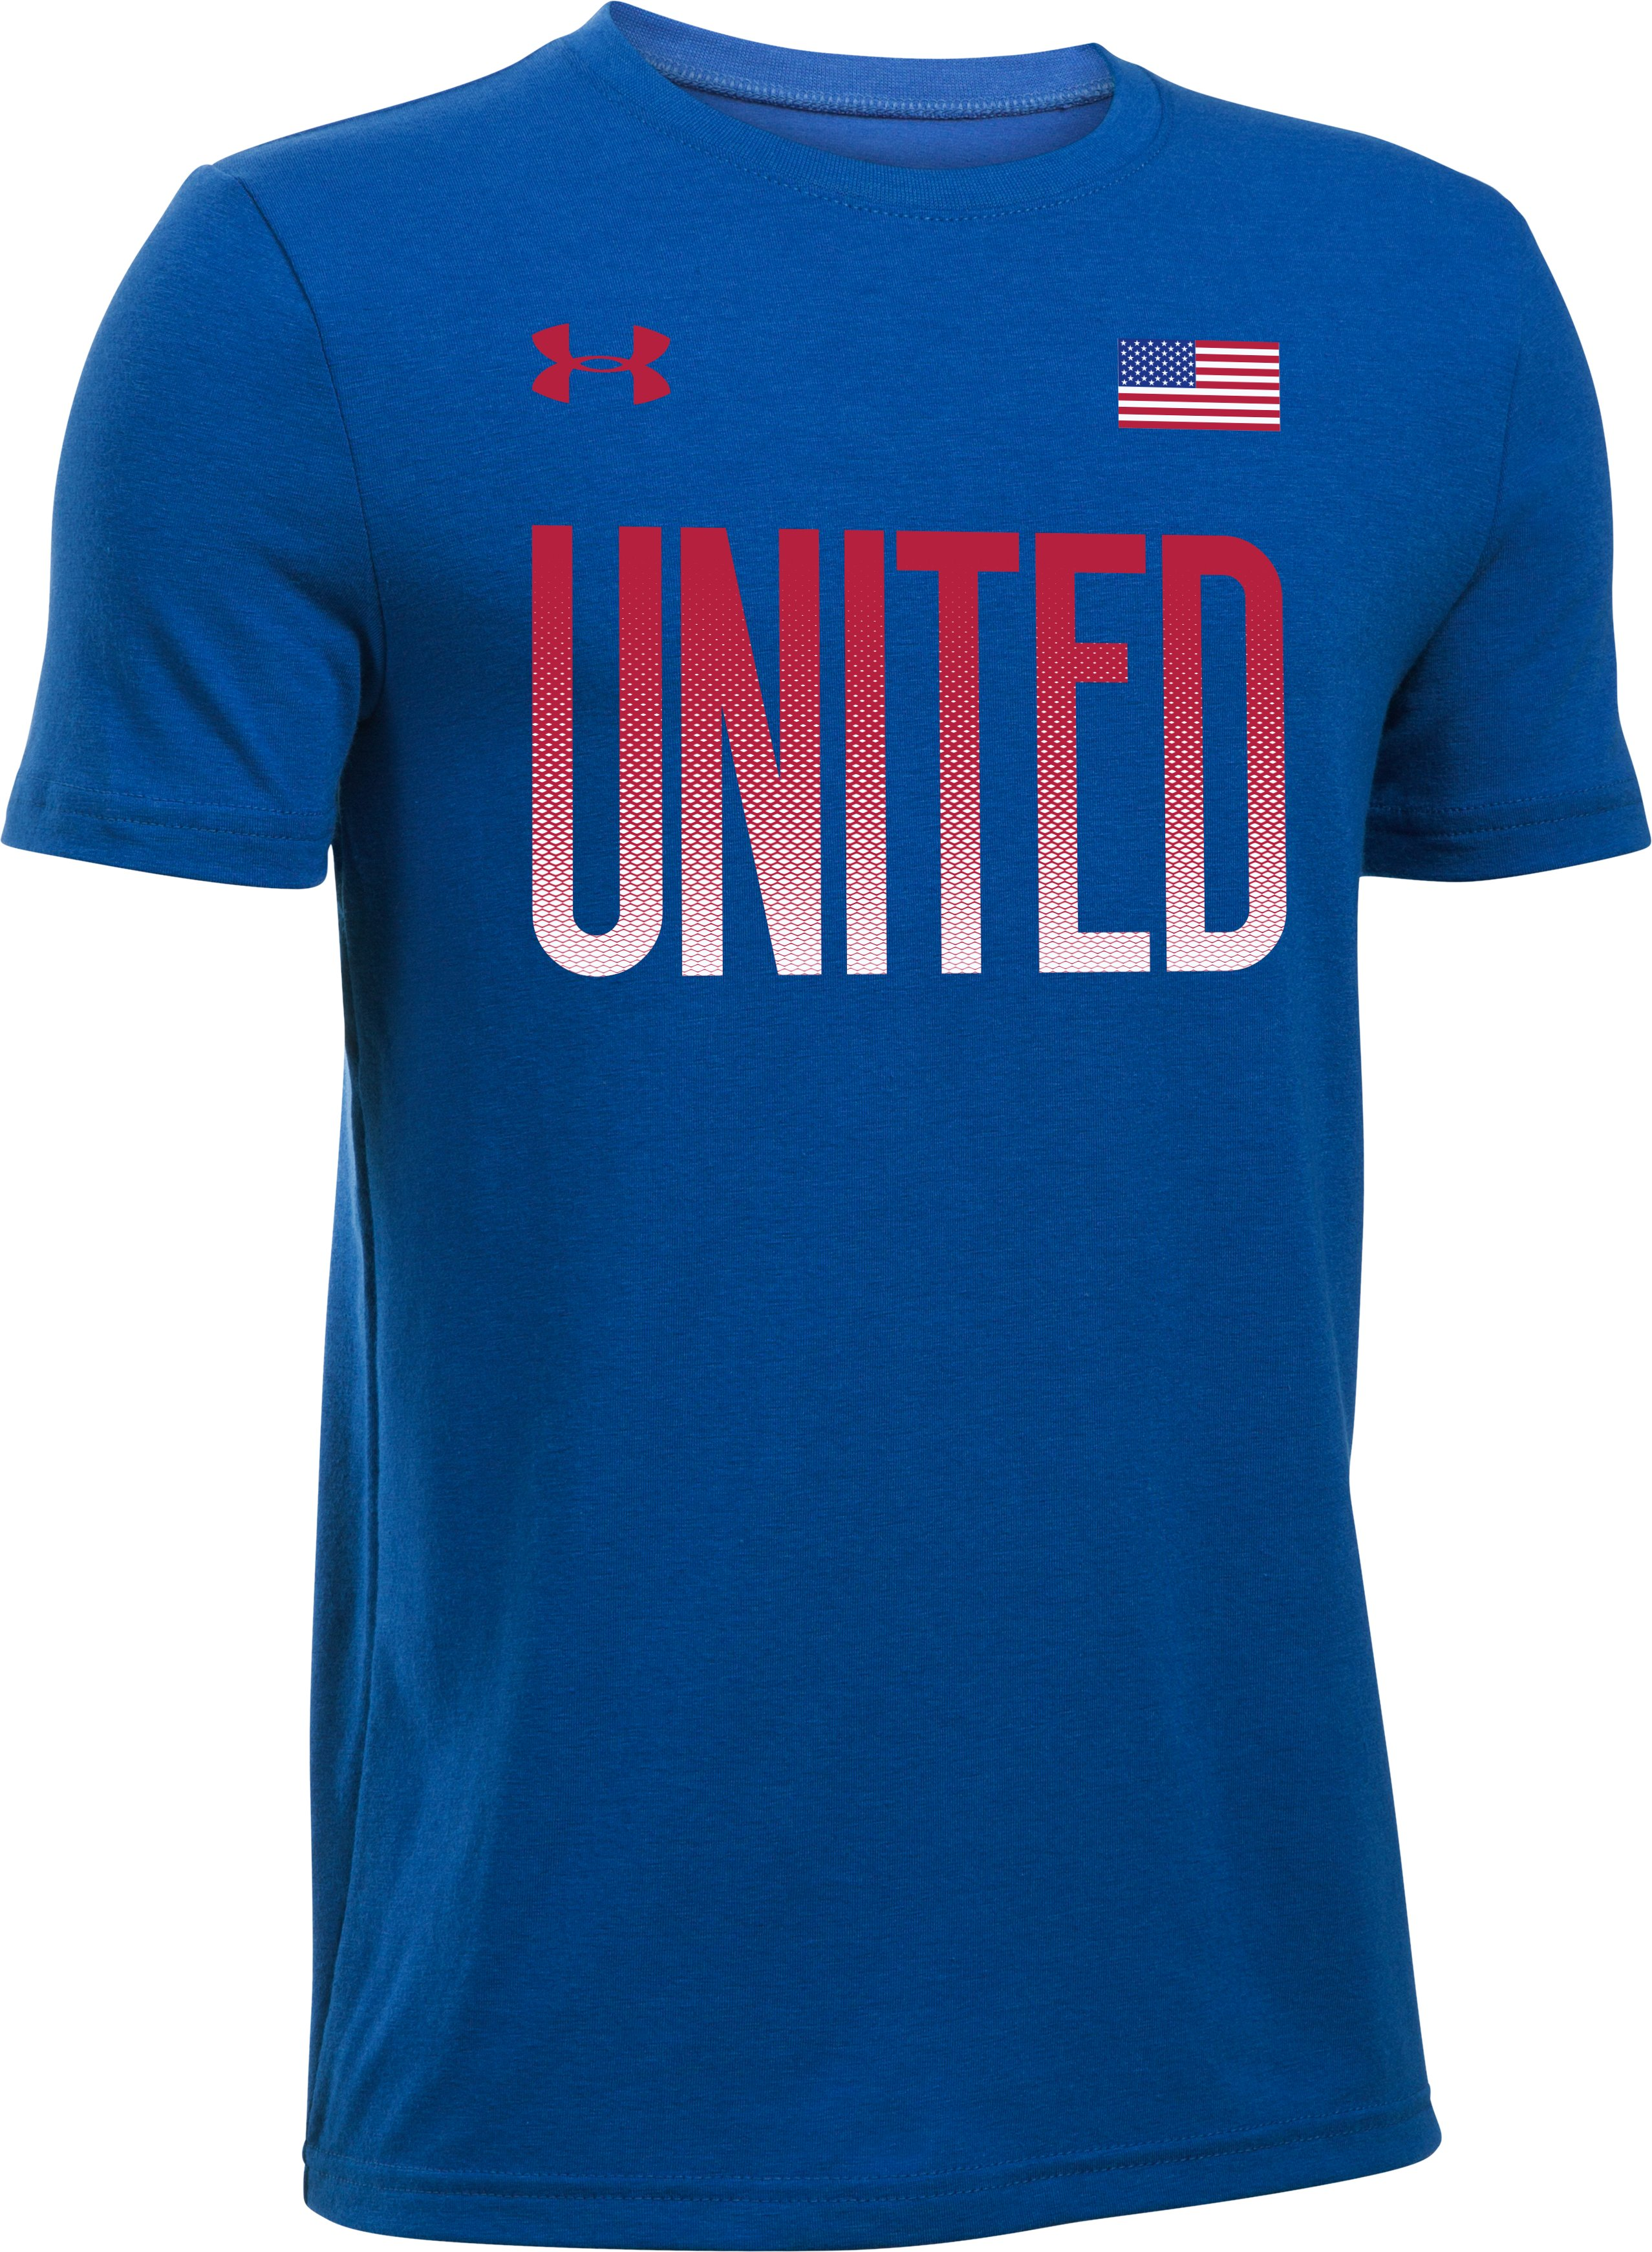 Boys' UA United T-Shirt, Royal